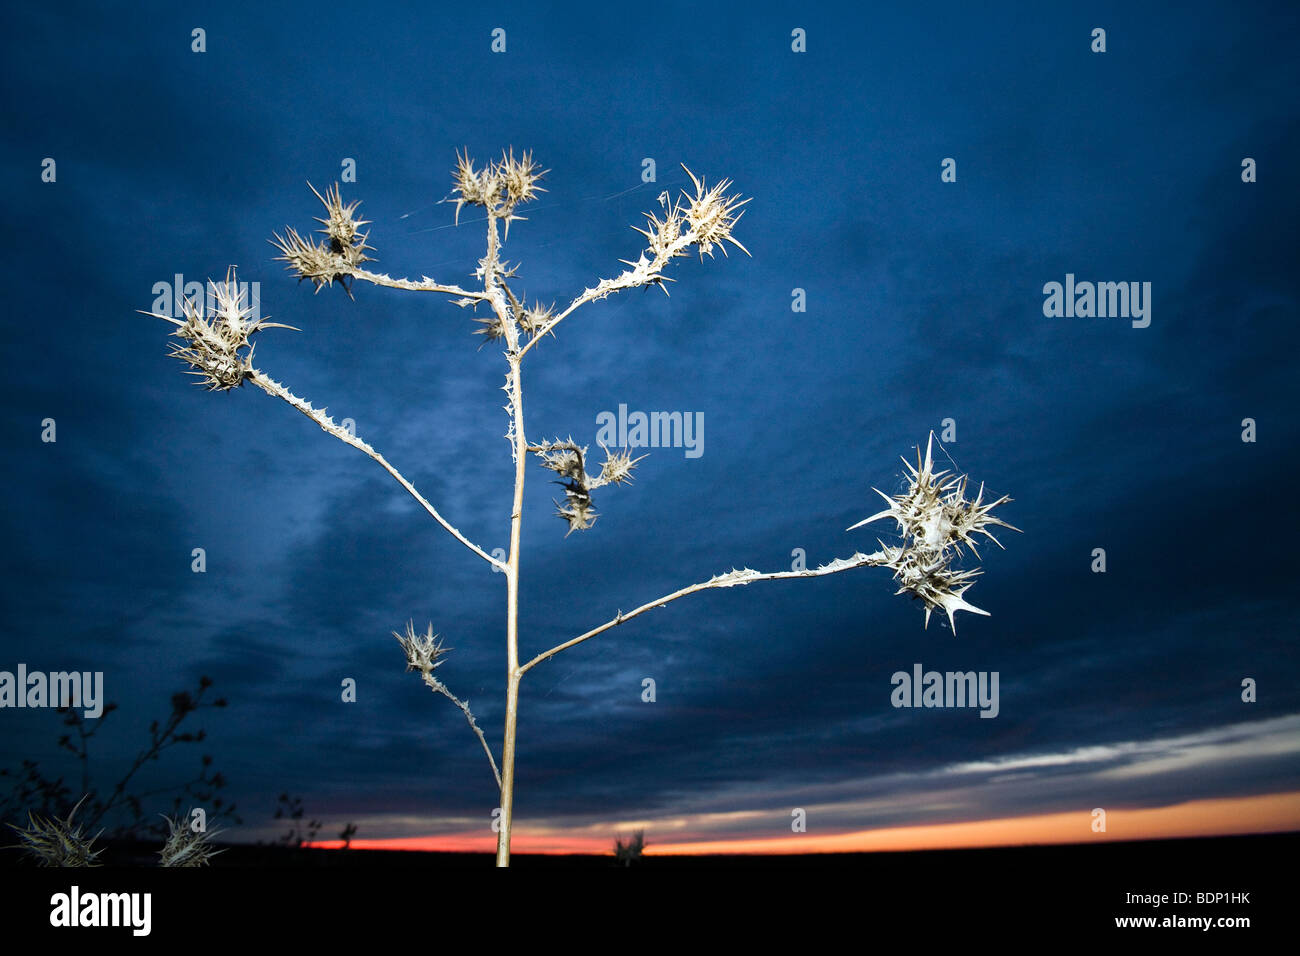 Thistle against a twilight sky - Stock Image